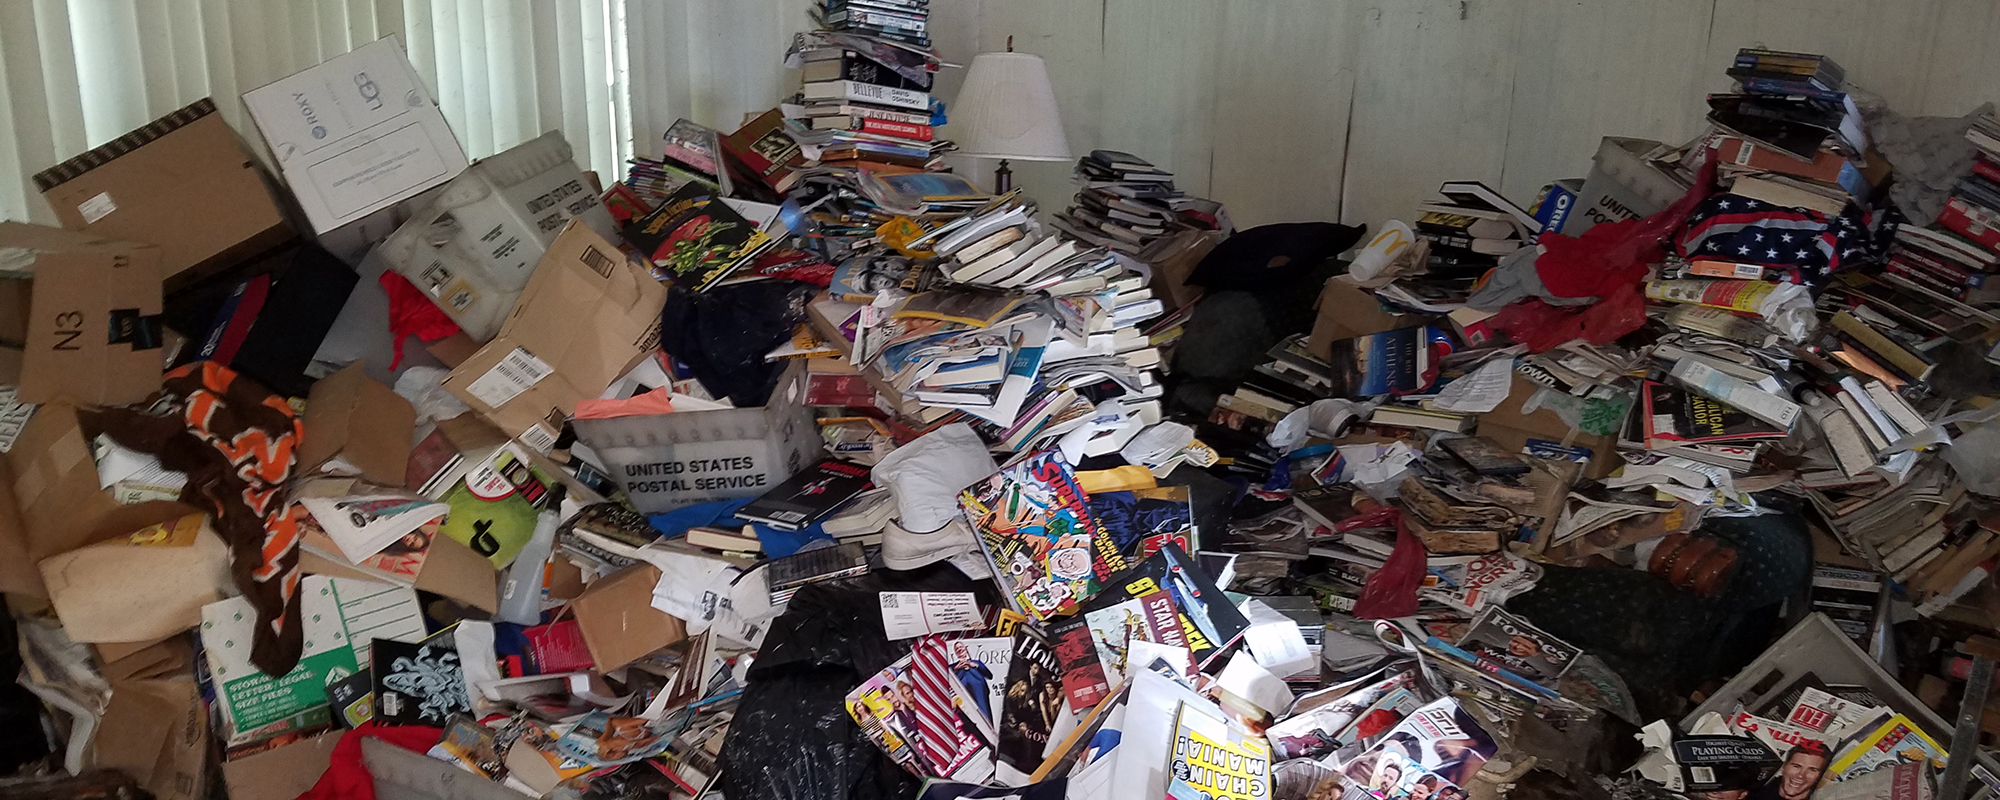 inheriting a hoarder home